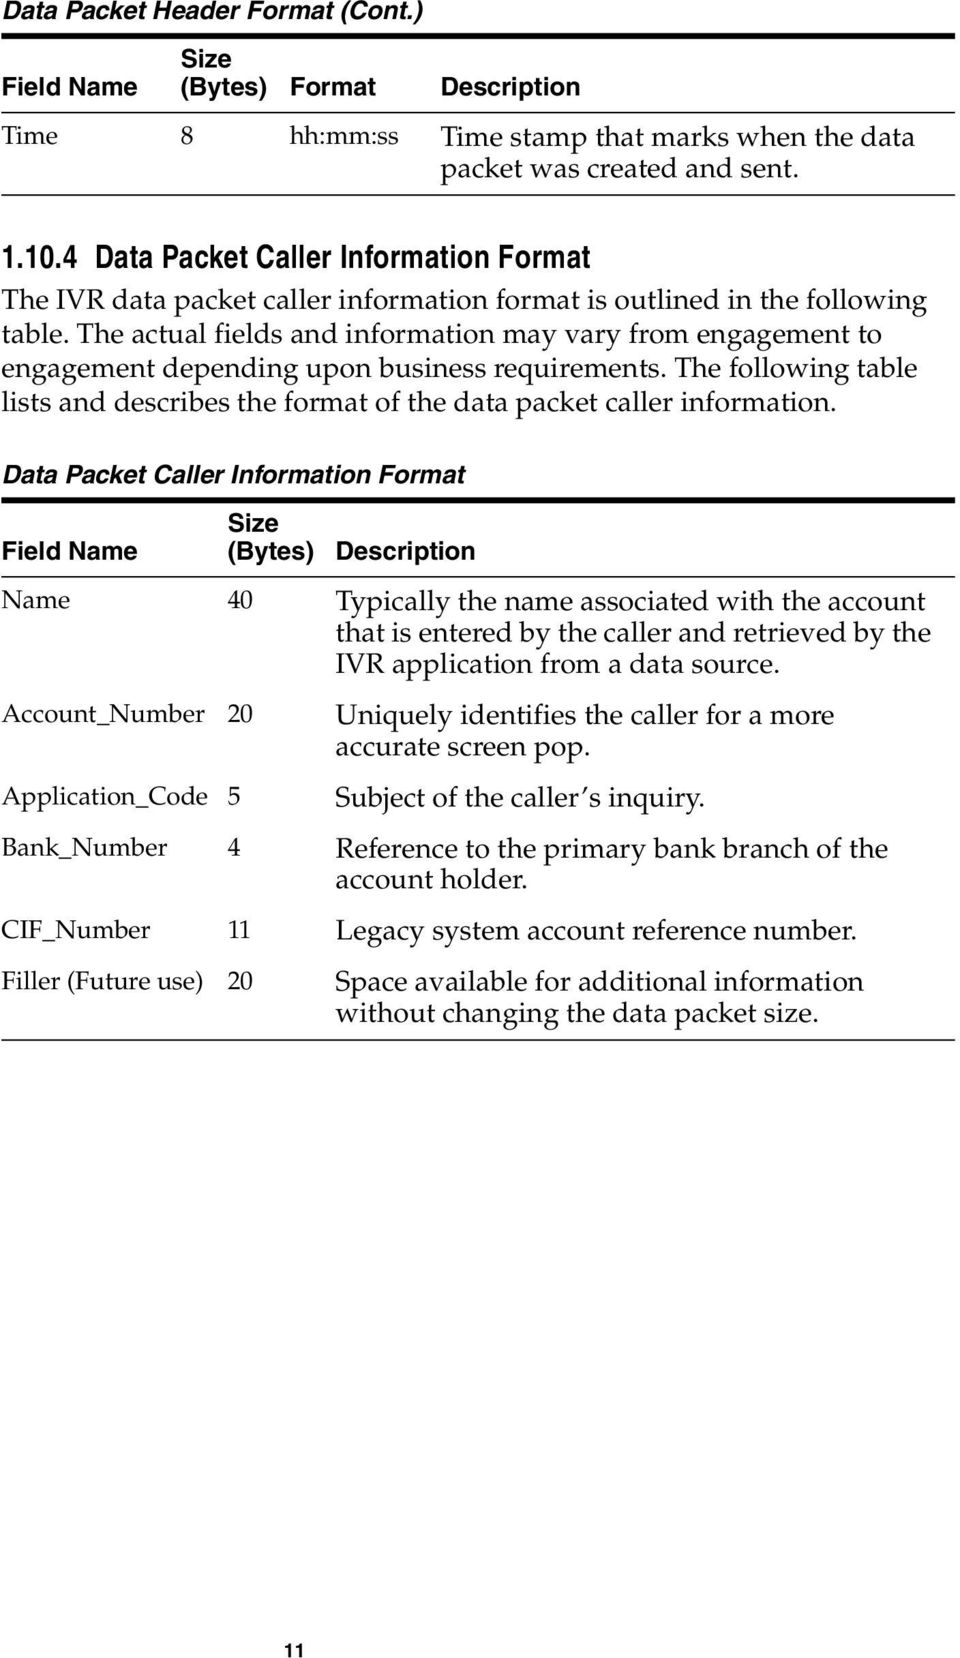 The actual fields and information may vary from engagement to engagement depending upon business requirements. The following table lists and describes the format of the data packet caller information.